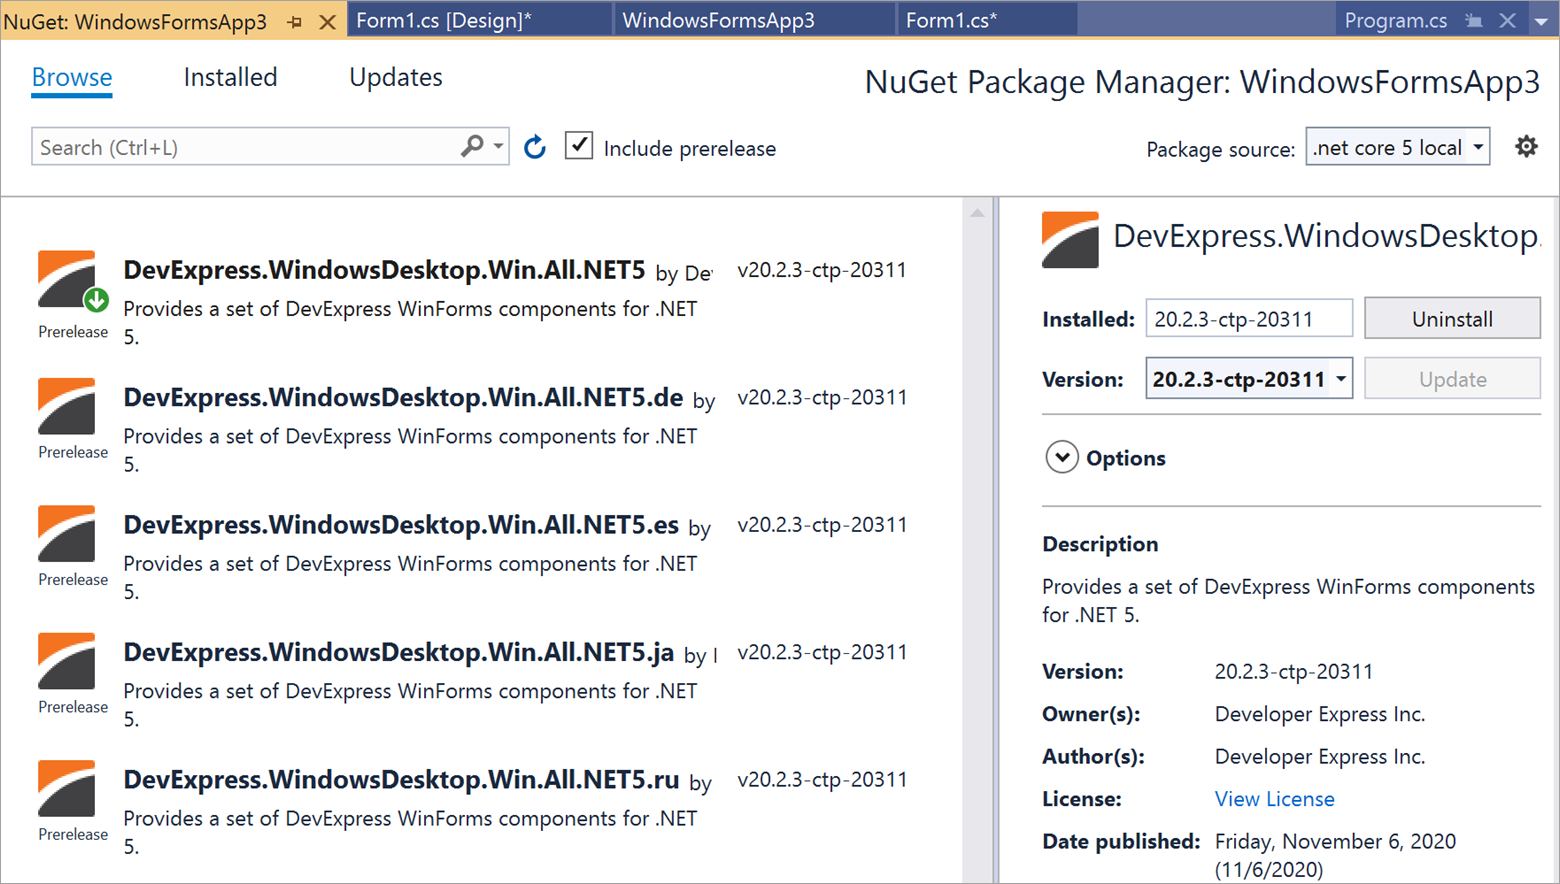 NuGet Package Manager with Localized WinForms packages